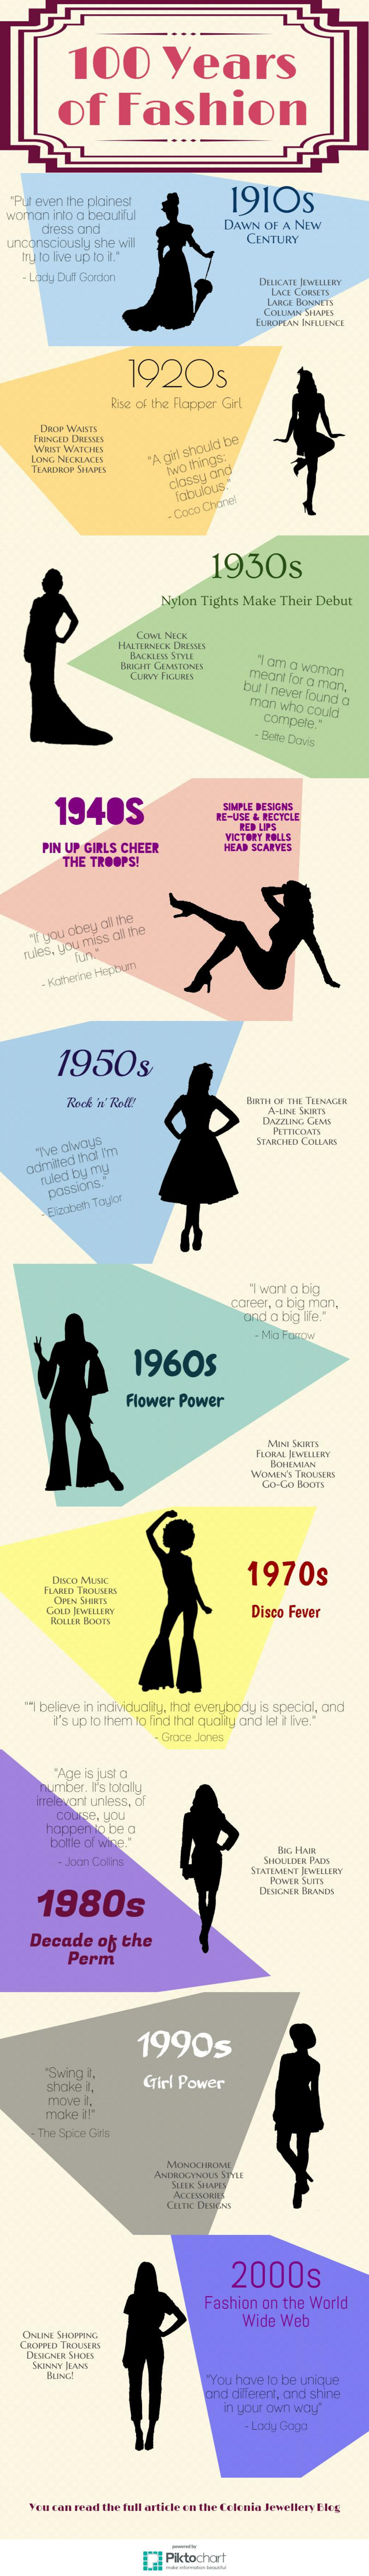 100 Years of Fashion Infographic